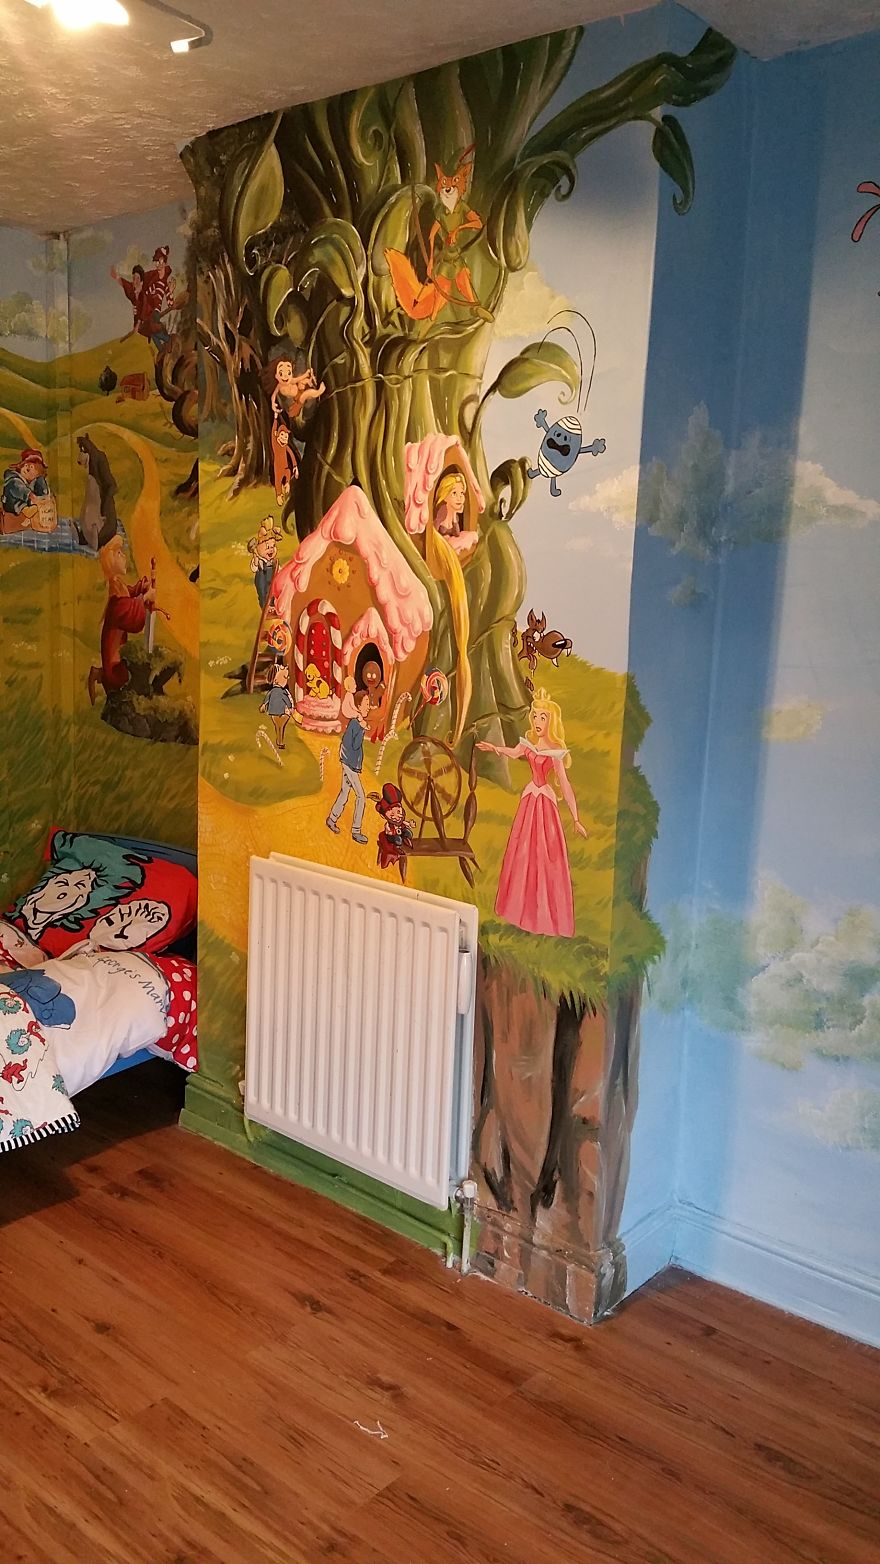 Fairy Themed Bedroom Decorations: I Made A Fairytale-Themed Room For My Daughter To